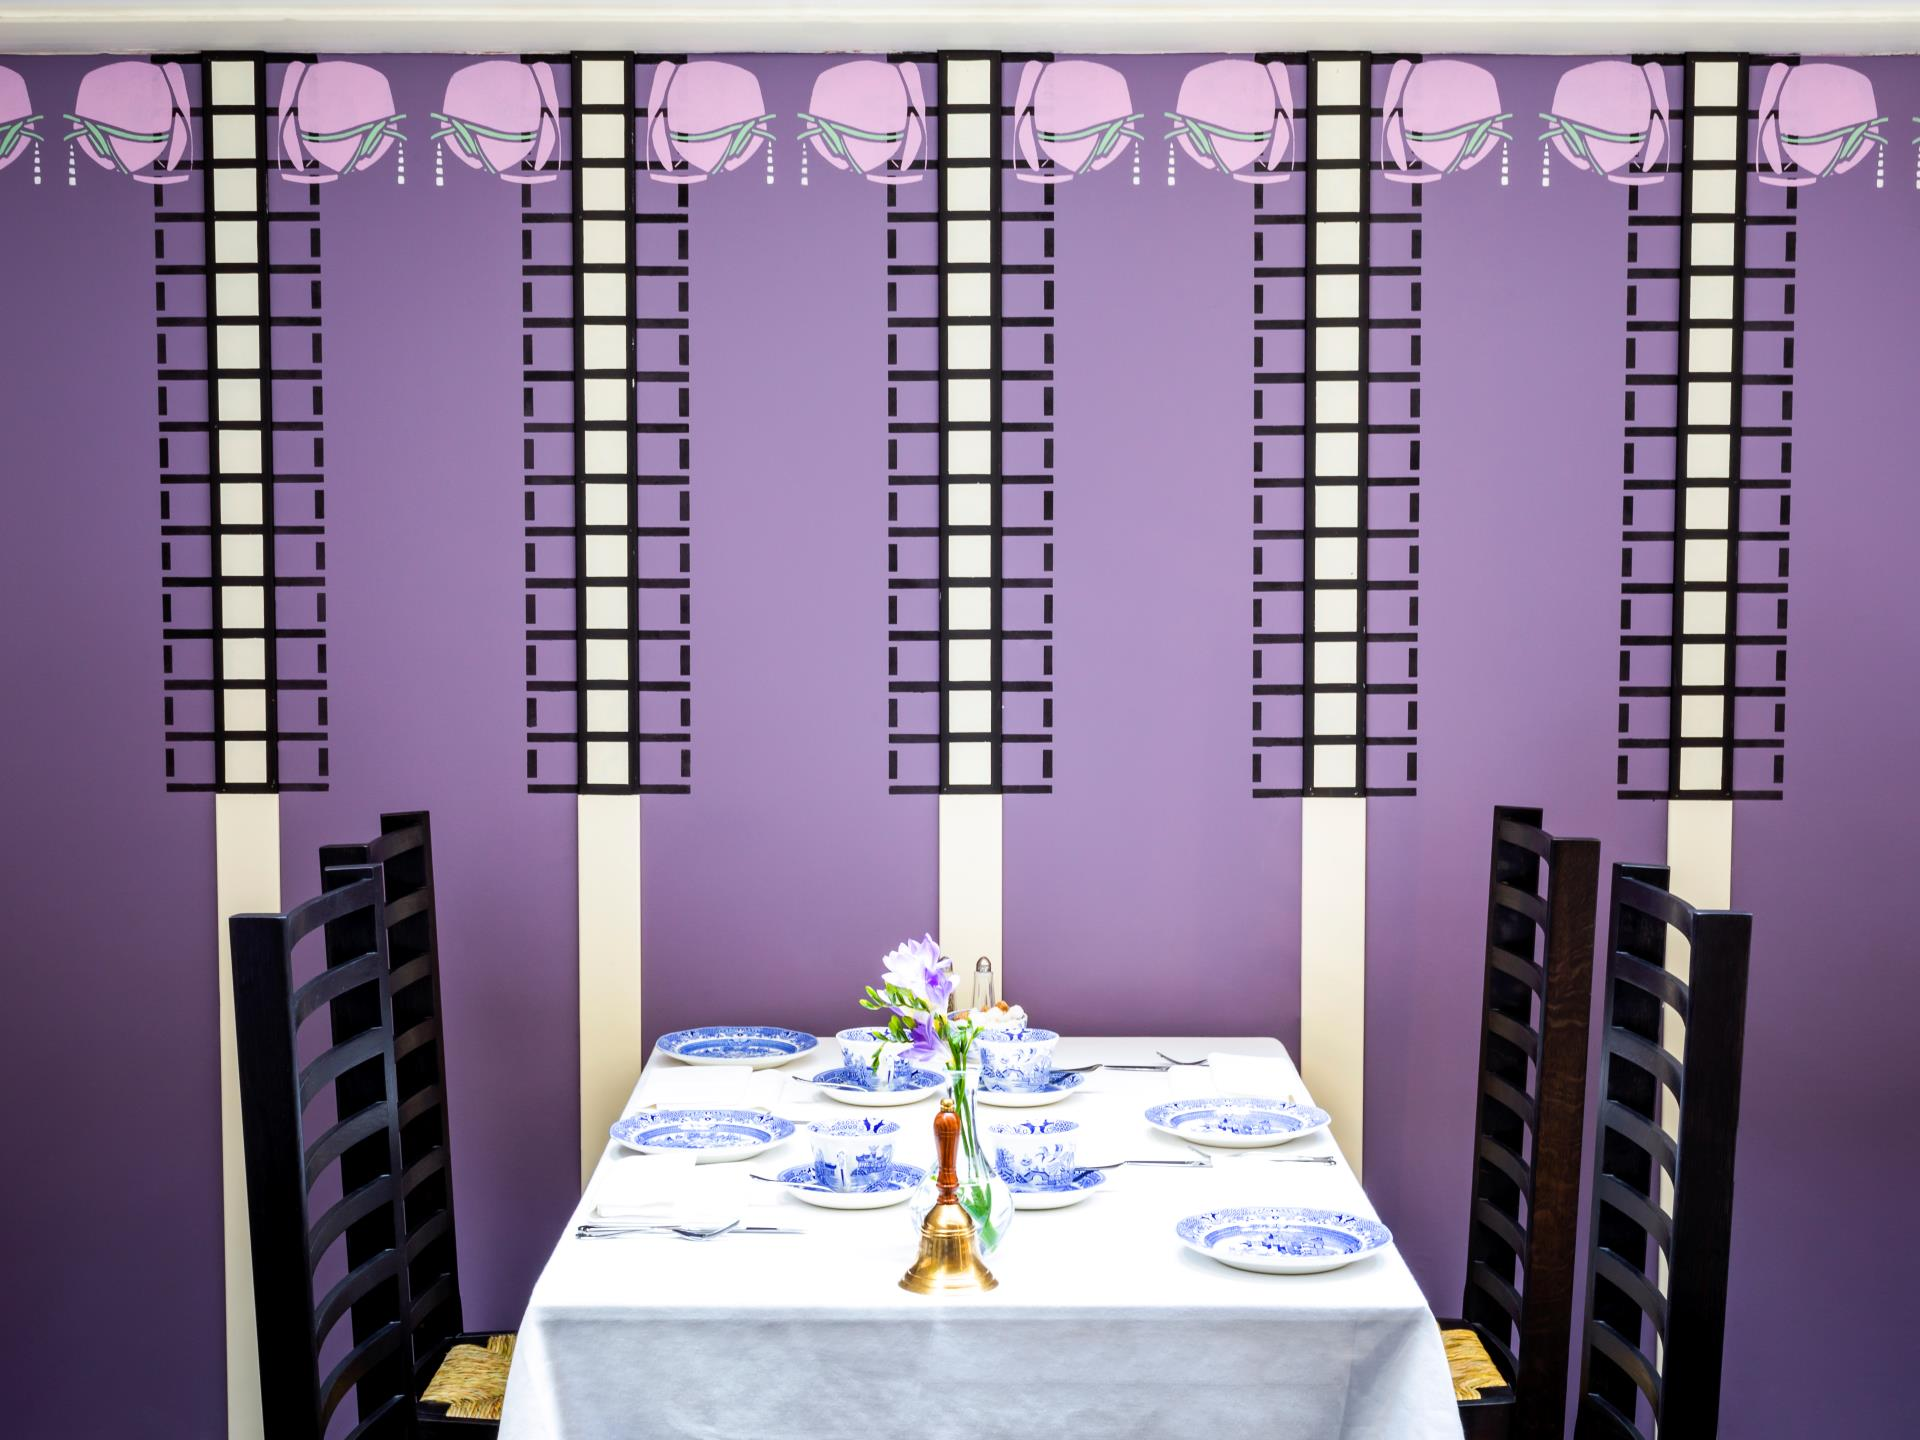 Table setting in the Gallery of the Tea Rooms showing stencilling detail on the wall panels and ladder back chairs. The table is set with Blue Willow pattern Burleigh crockery.